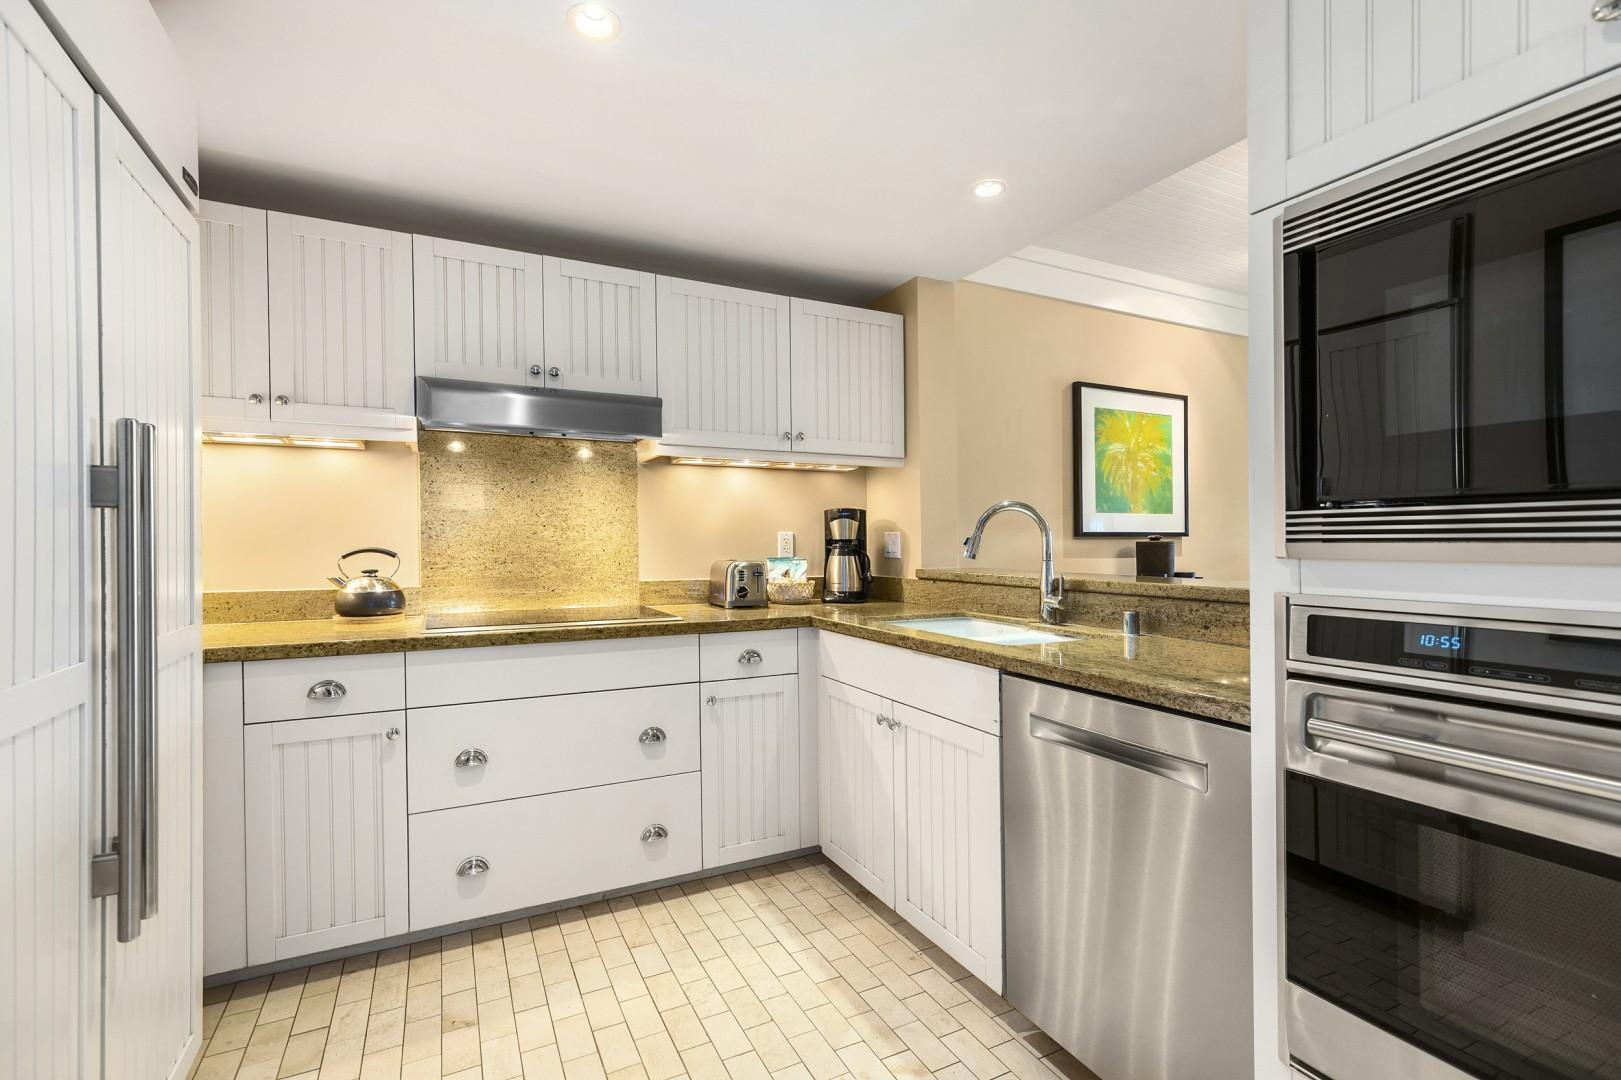 Gourmet Kitchen includes everything you need